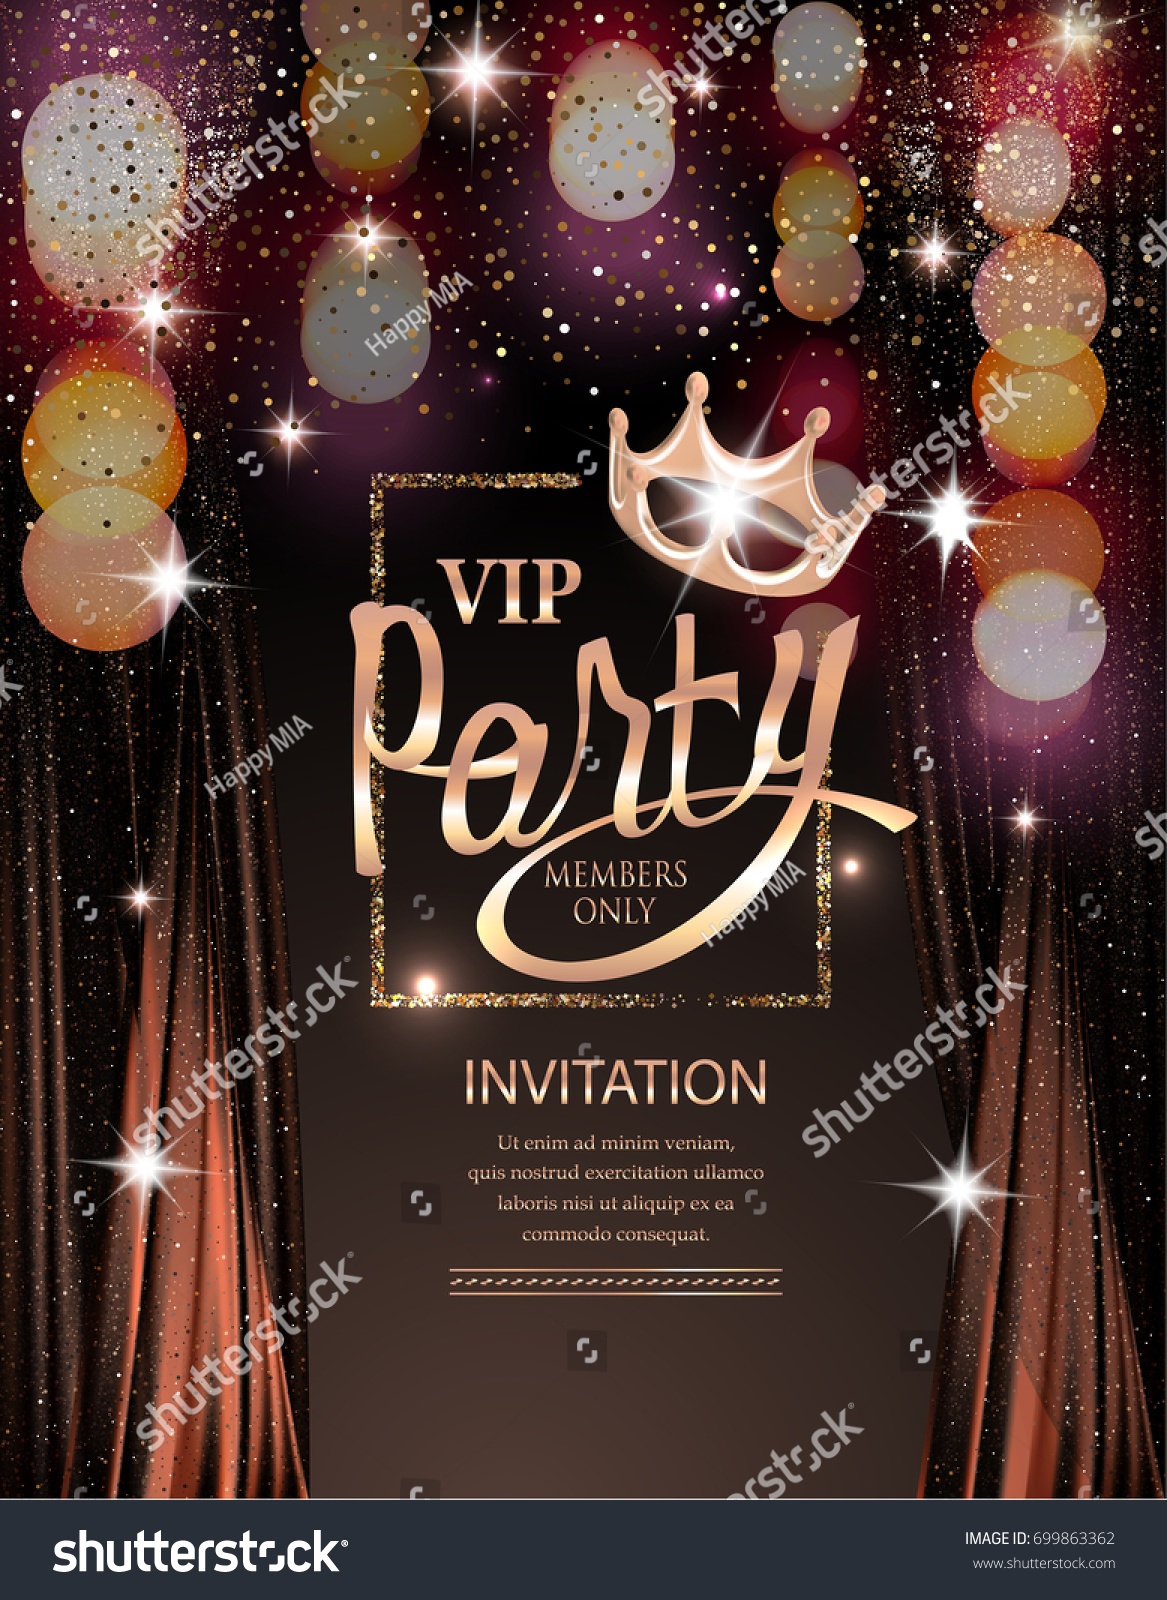 Vip Party Invitation Card Frame Curtains Stock Vector (2018 ...